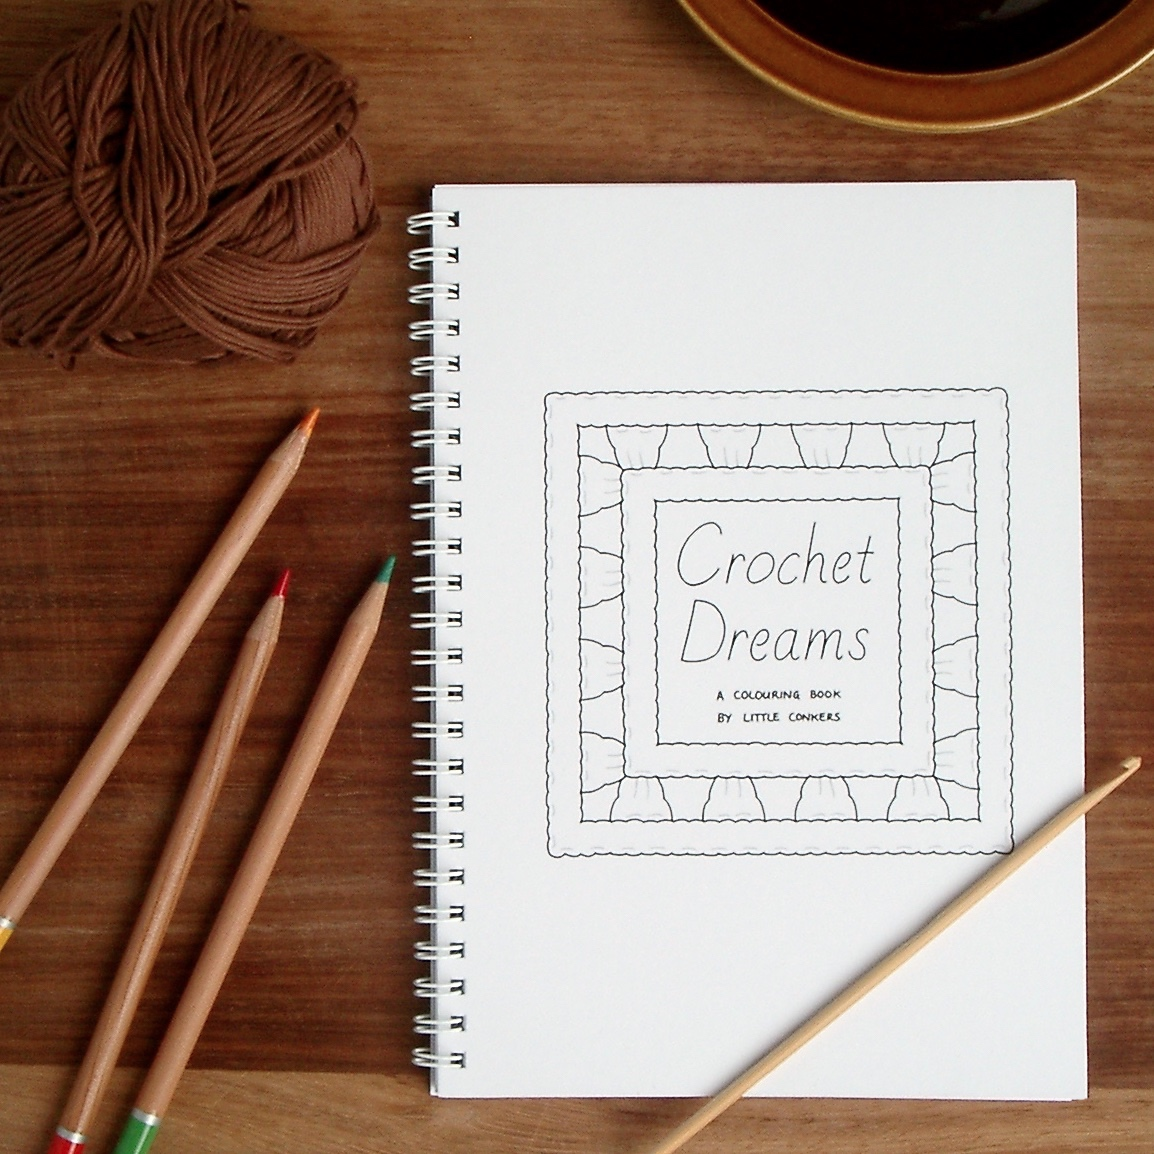 Crochet Dreams Colouring Book by #LittleConkers